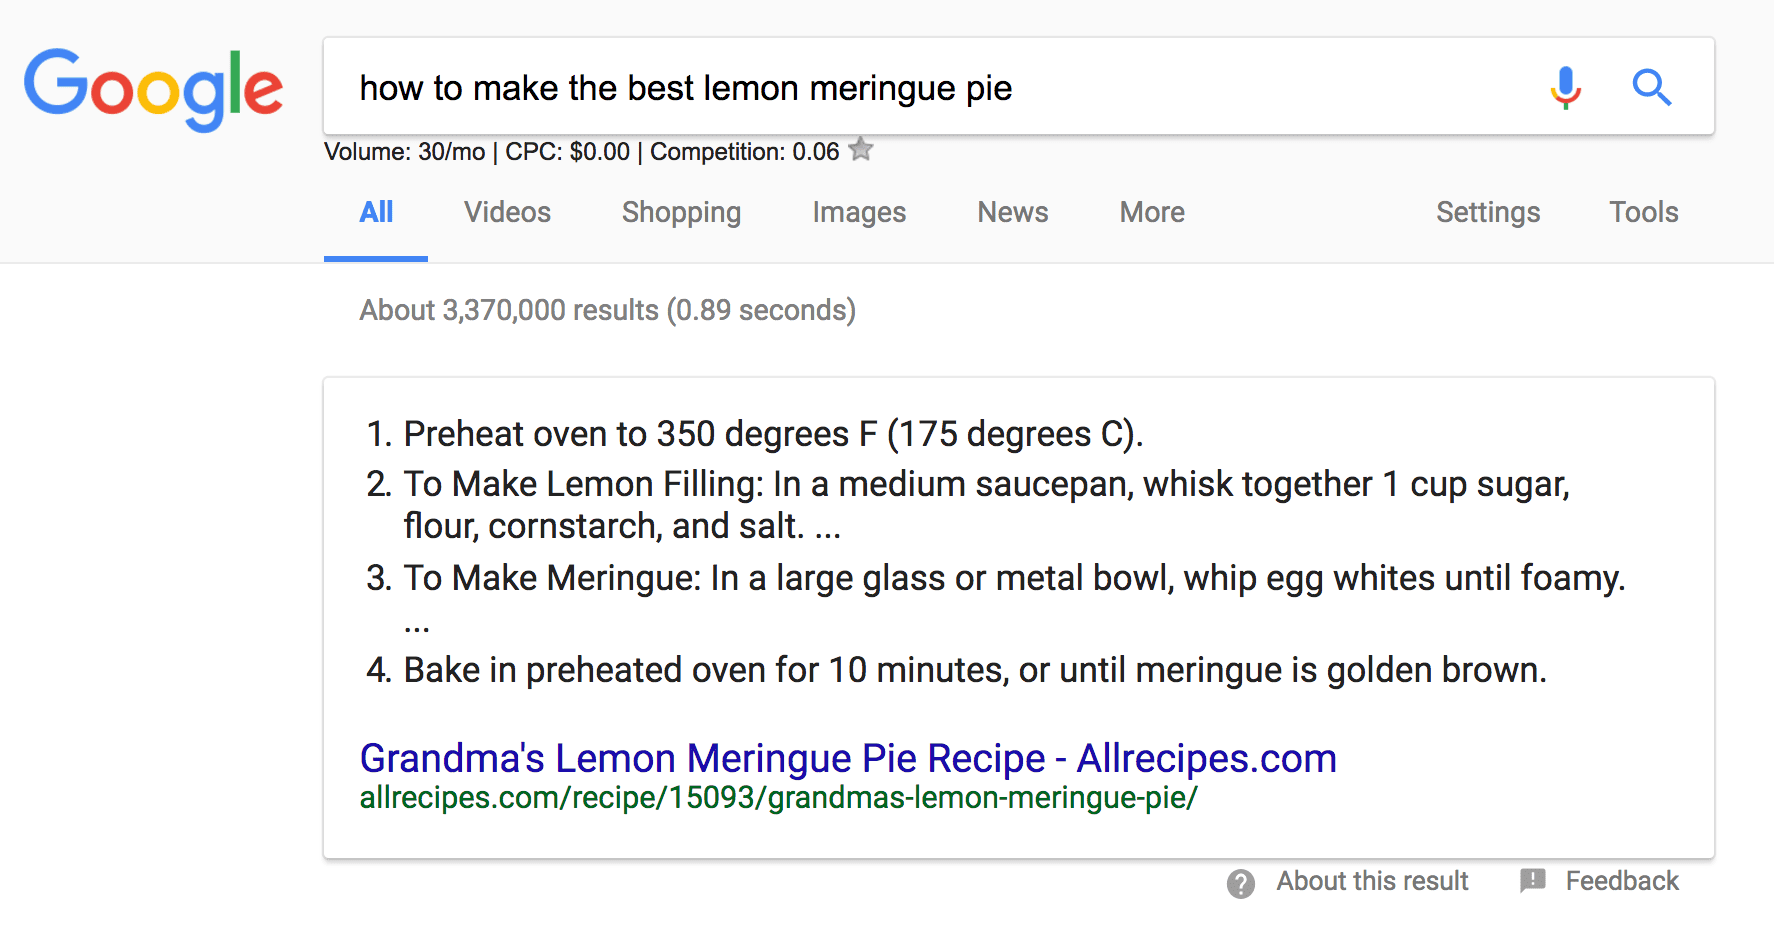 Shown is an answer box on Google's SERP showcasing a recipe which offers steps to making a lemon meringue pie